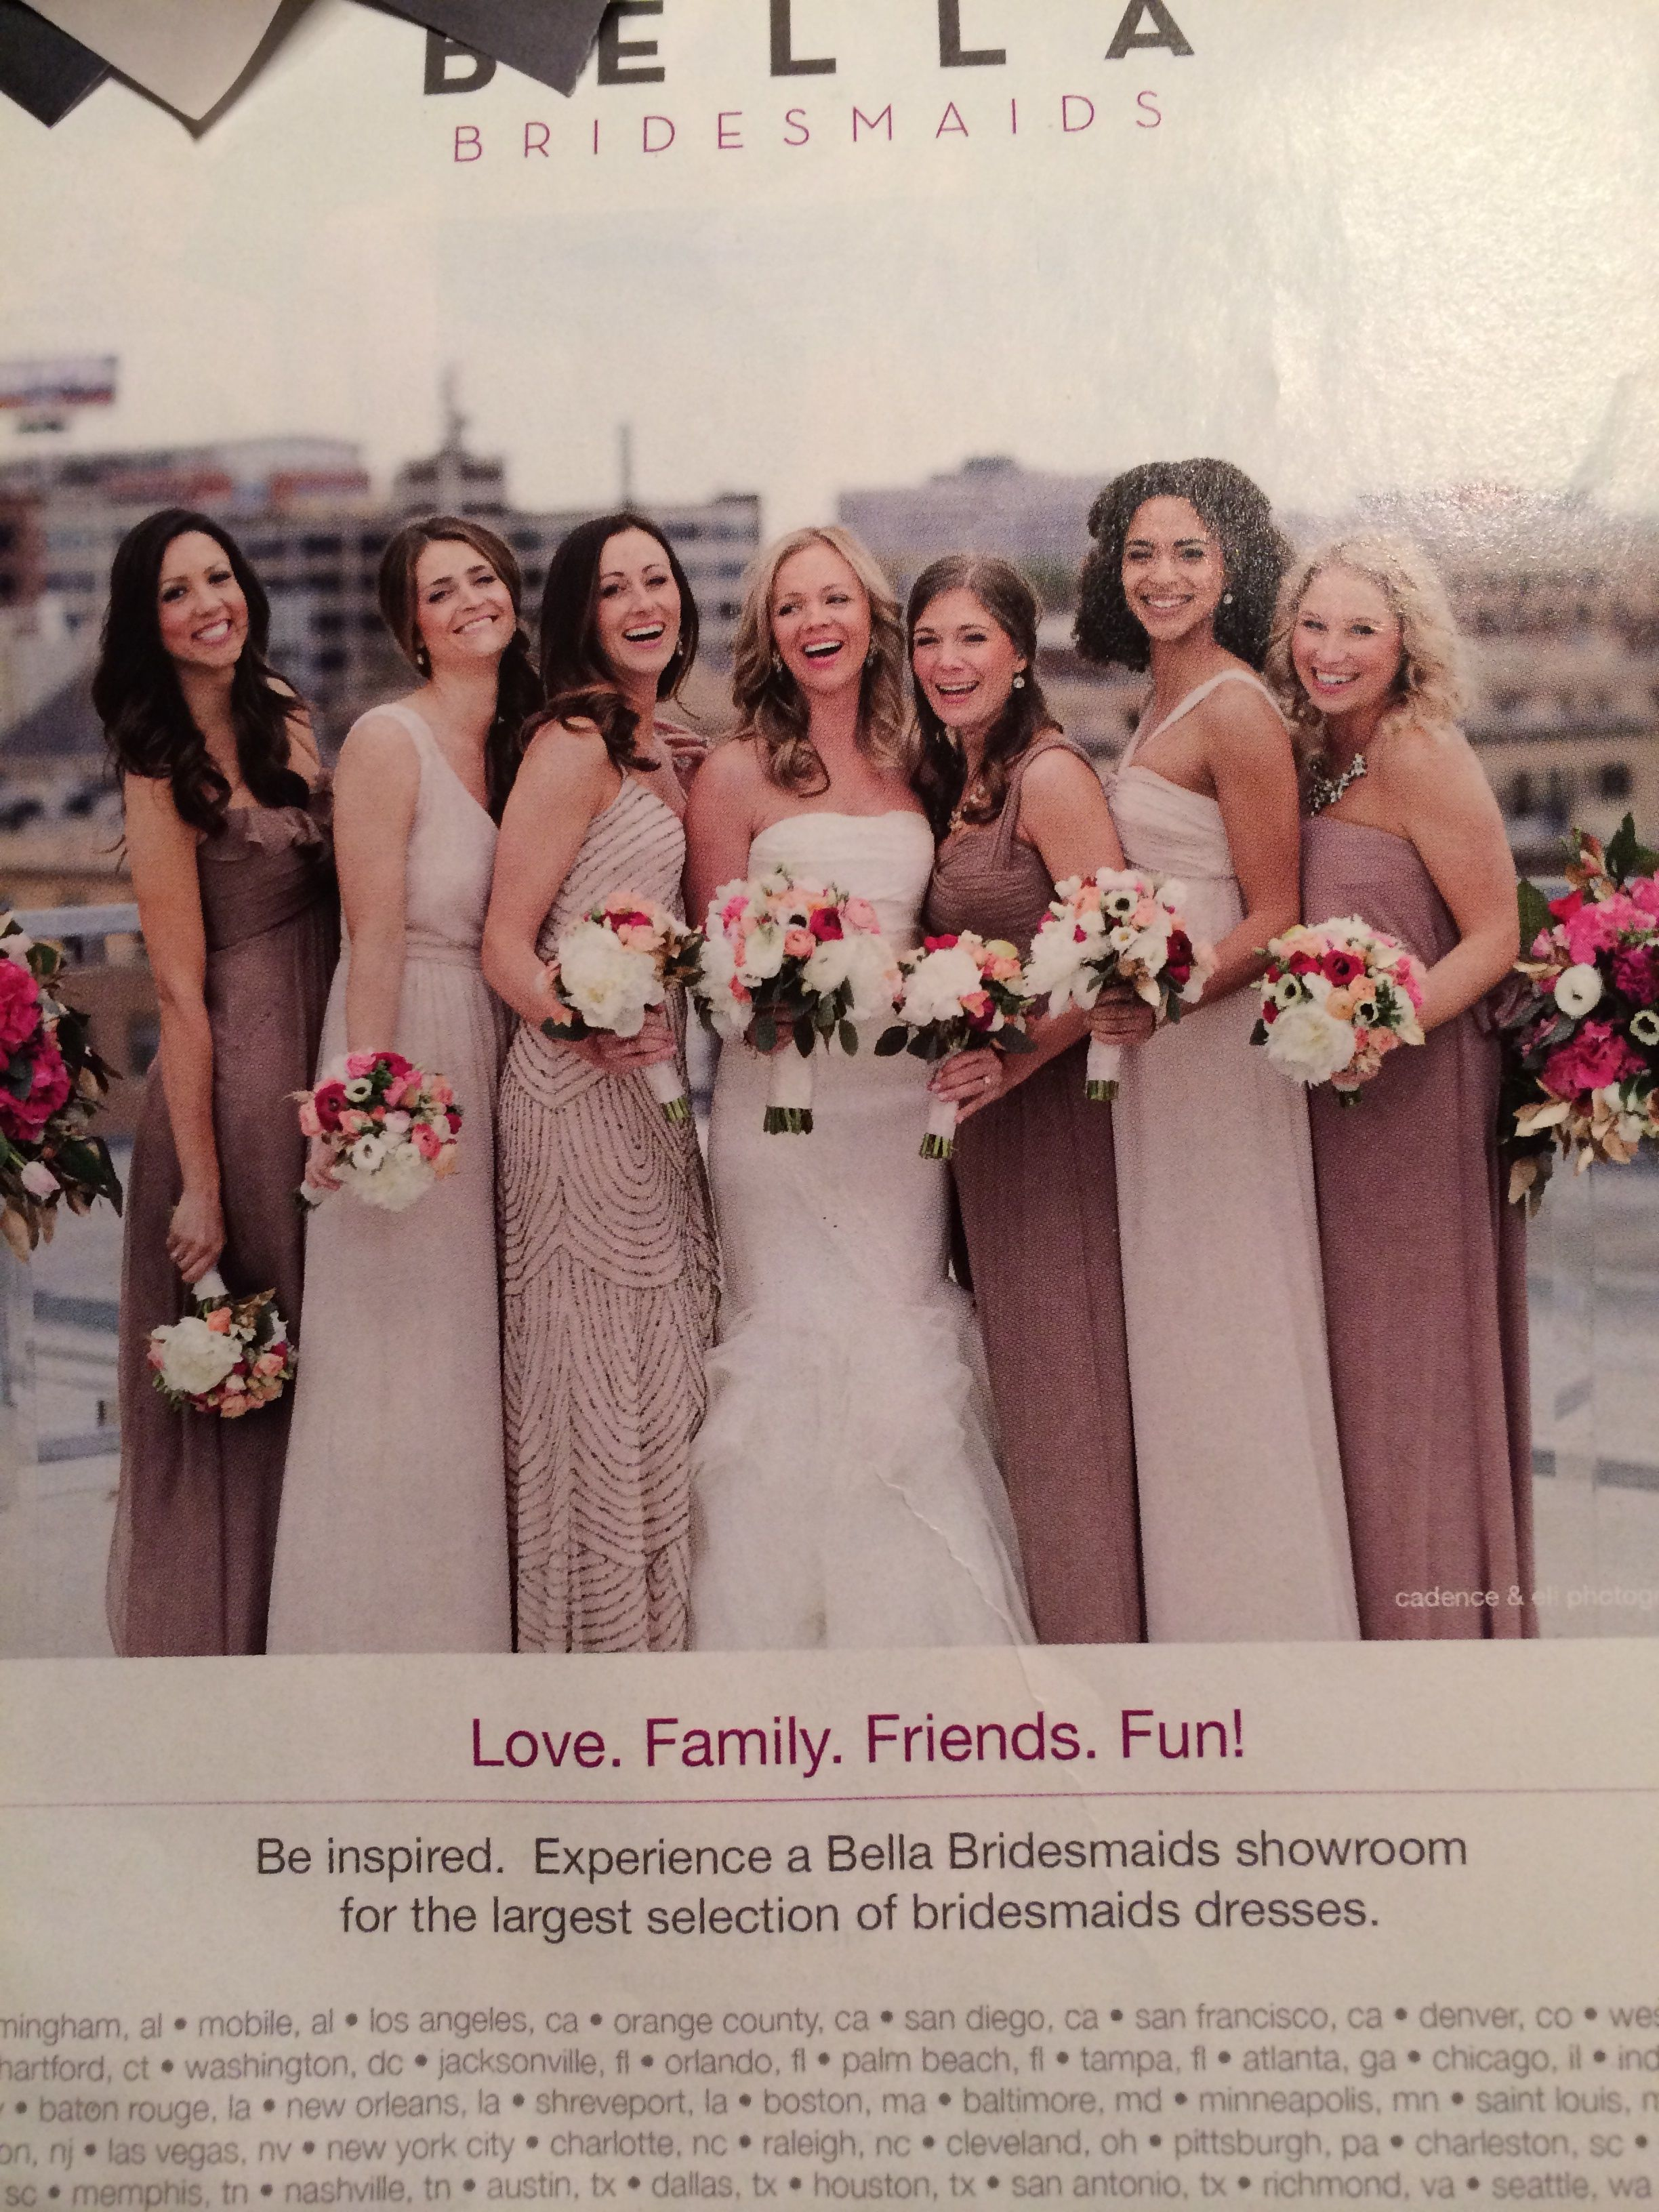 The aesthetic we want bridesmaids pinterest explore bridesmaids bridesmaid dresses and more ombrellifo Gallery